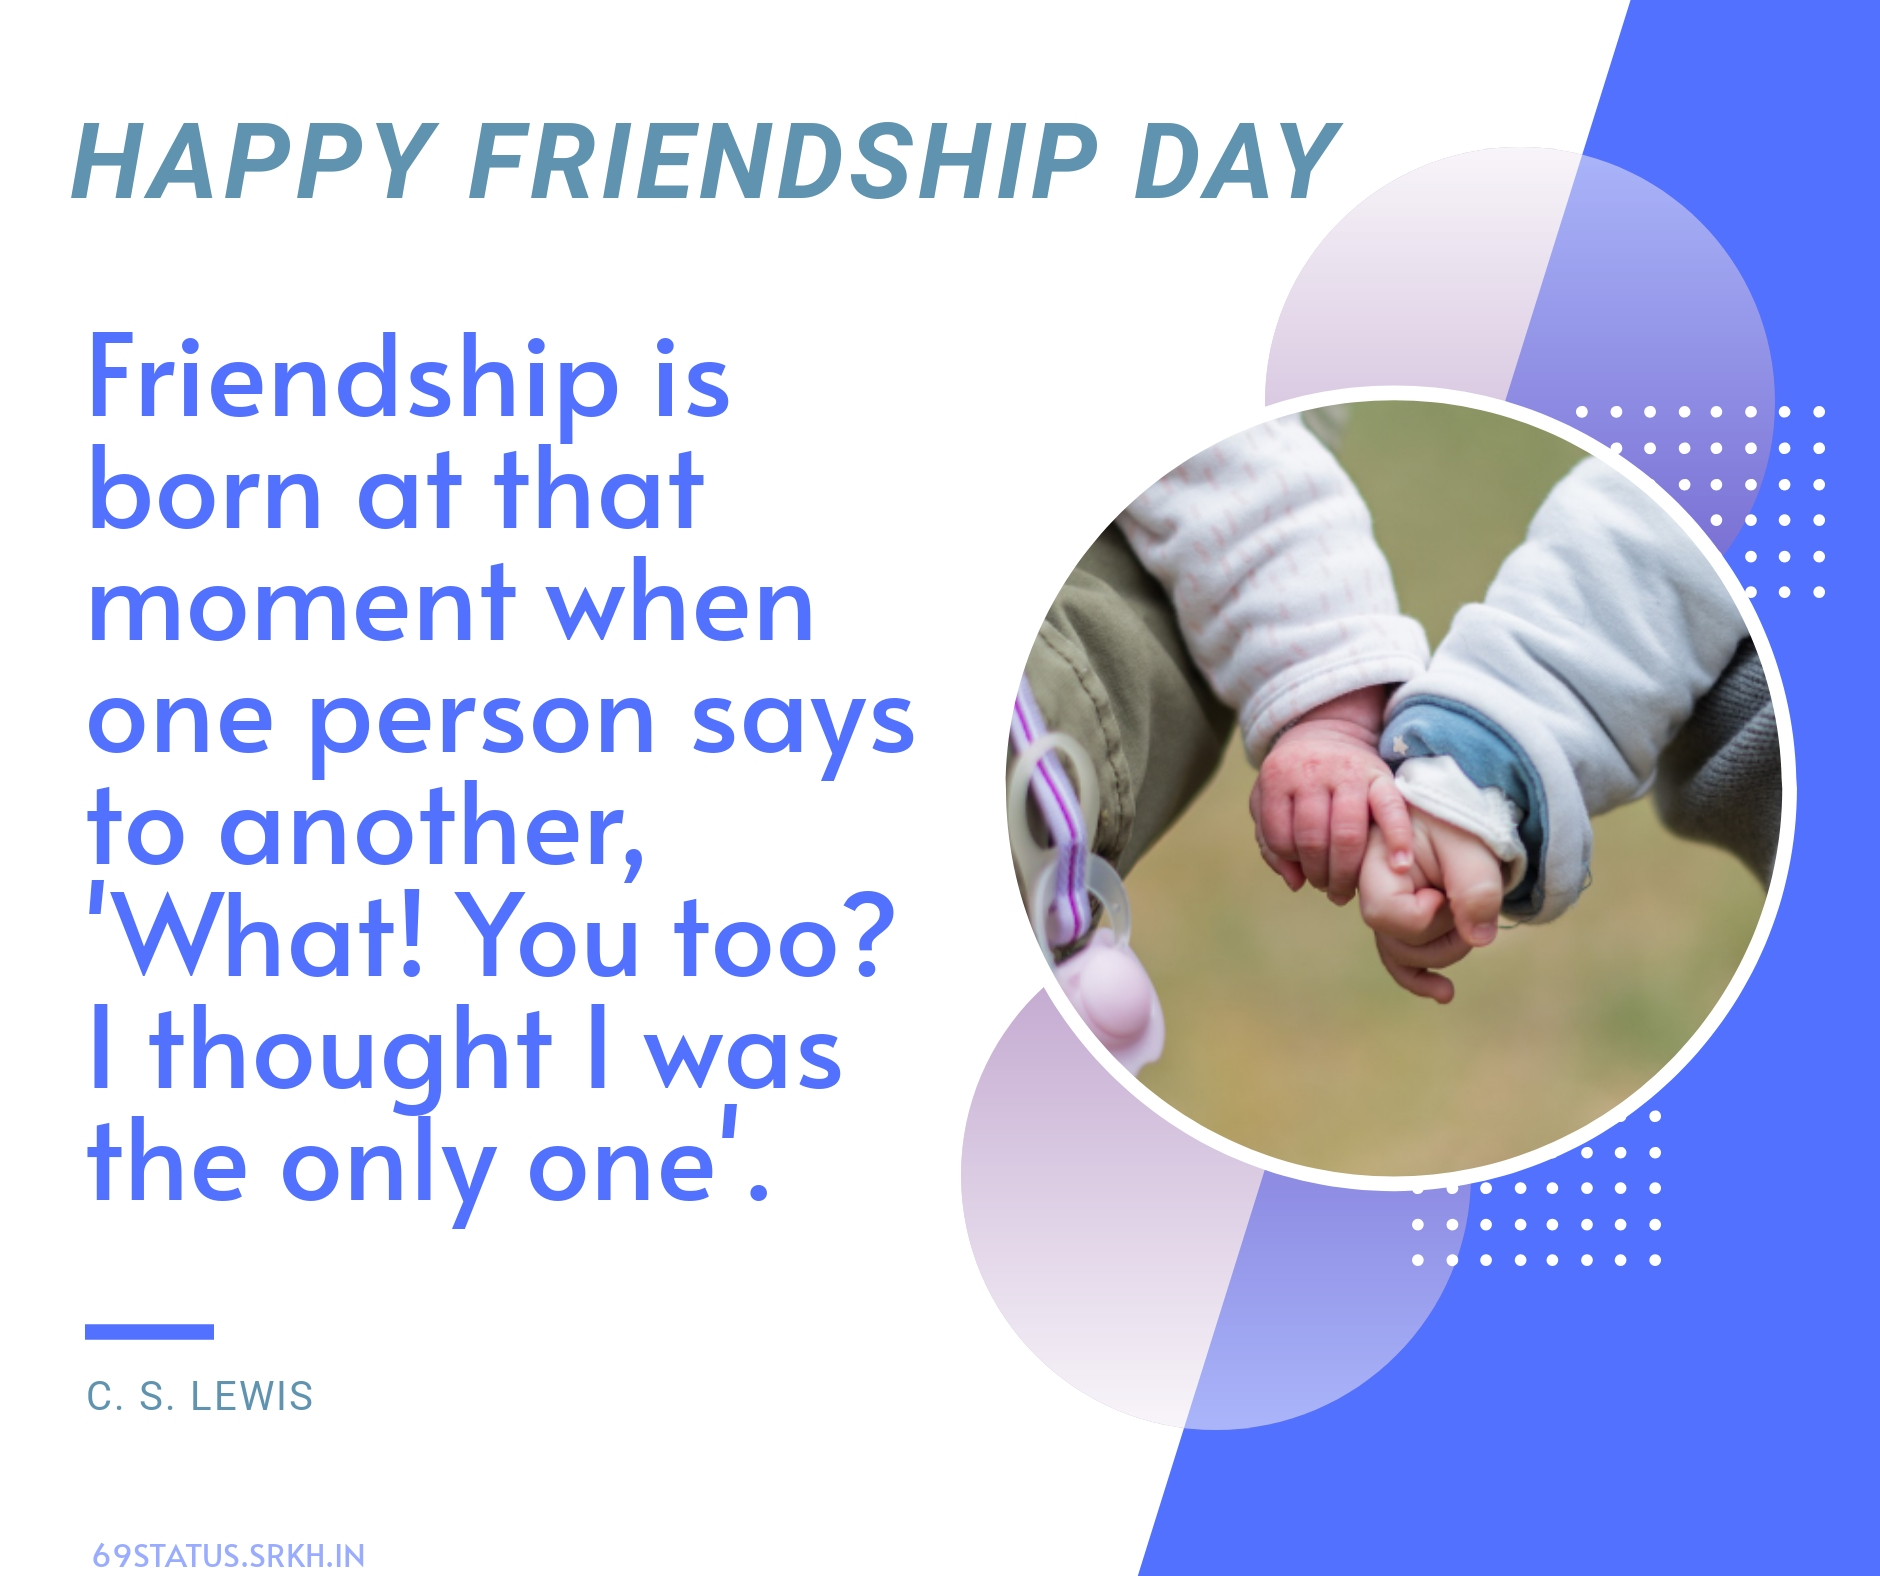 Happy Friendship Day Quotes Images full HD free download.